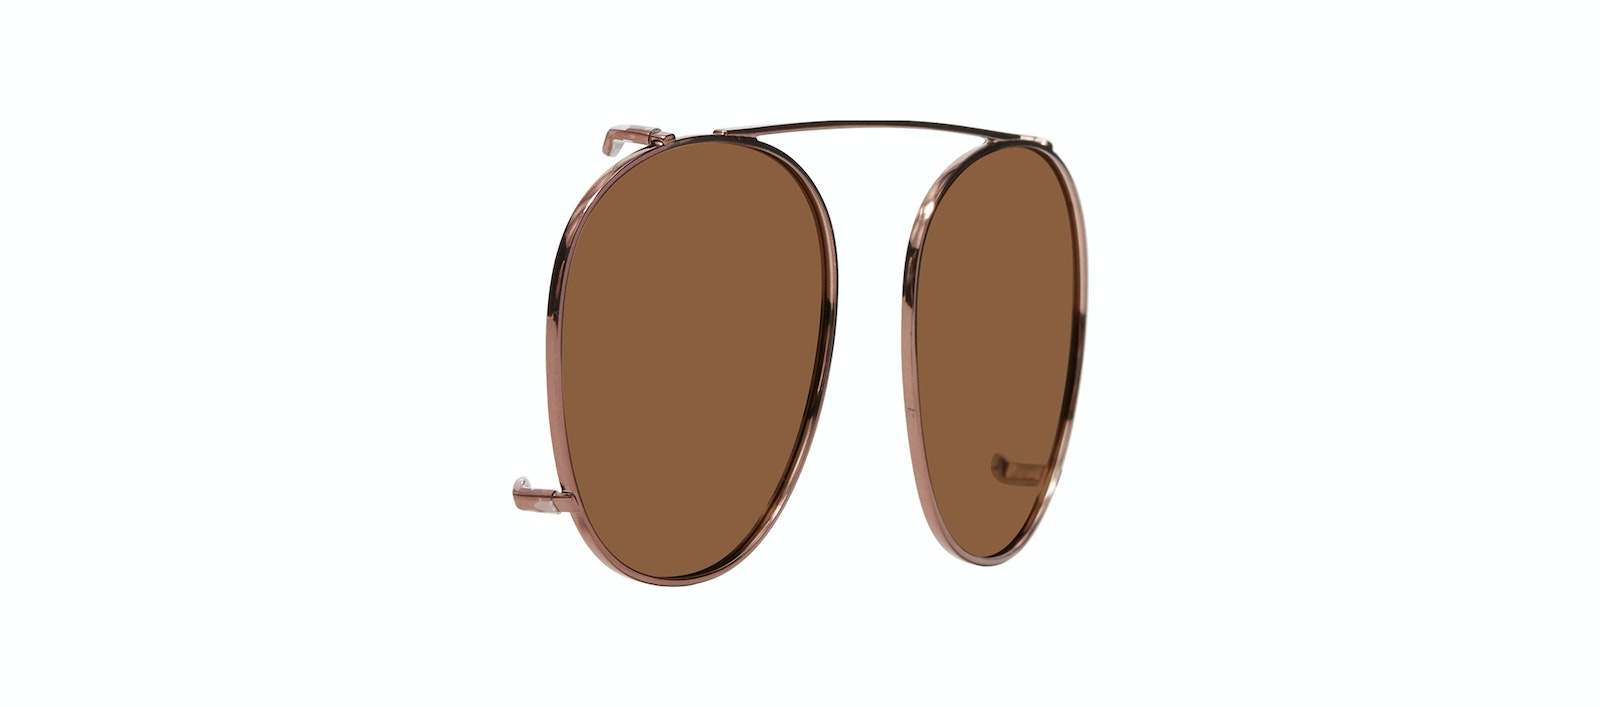 Affordable Fashion Glasses Accessory Women Divine Clip M Copper Tilt